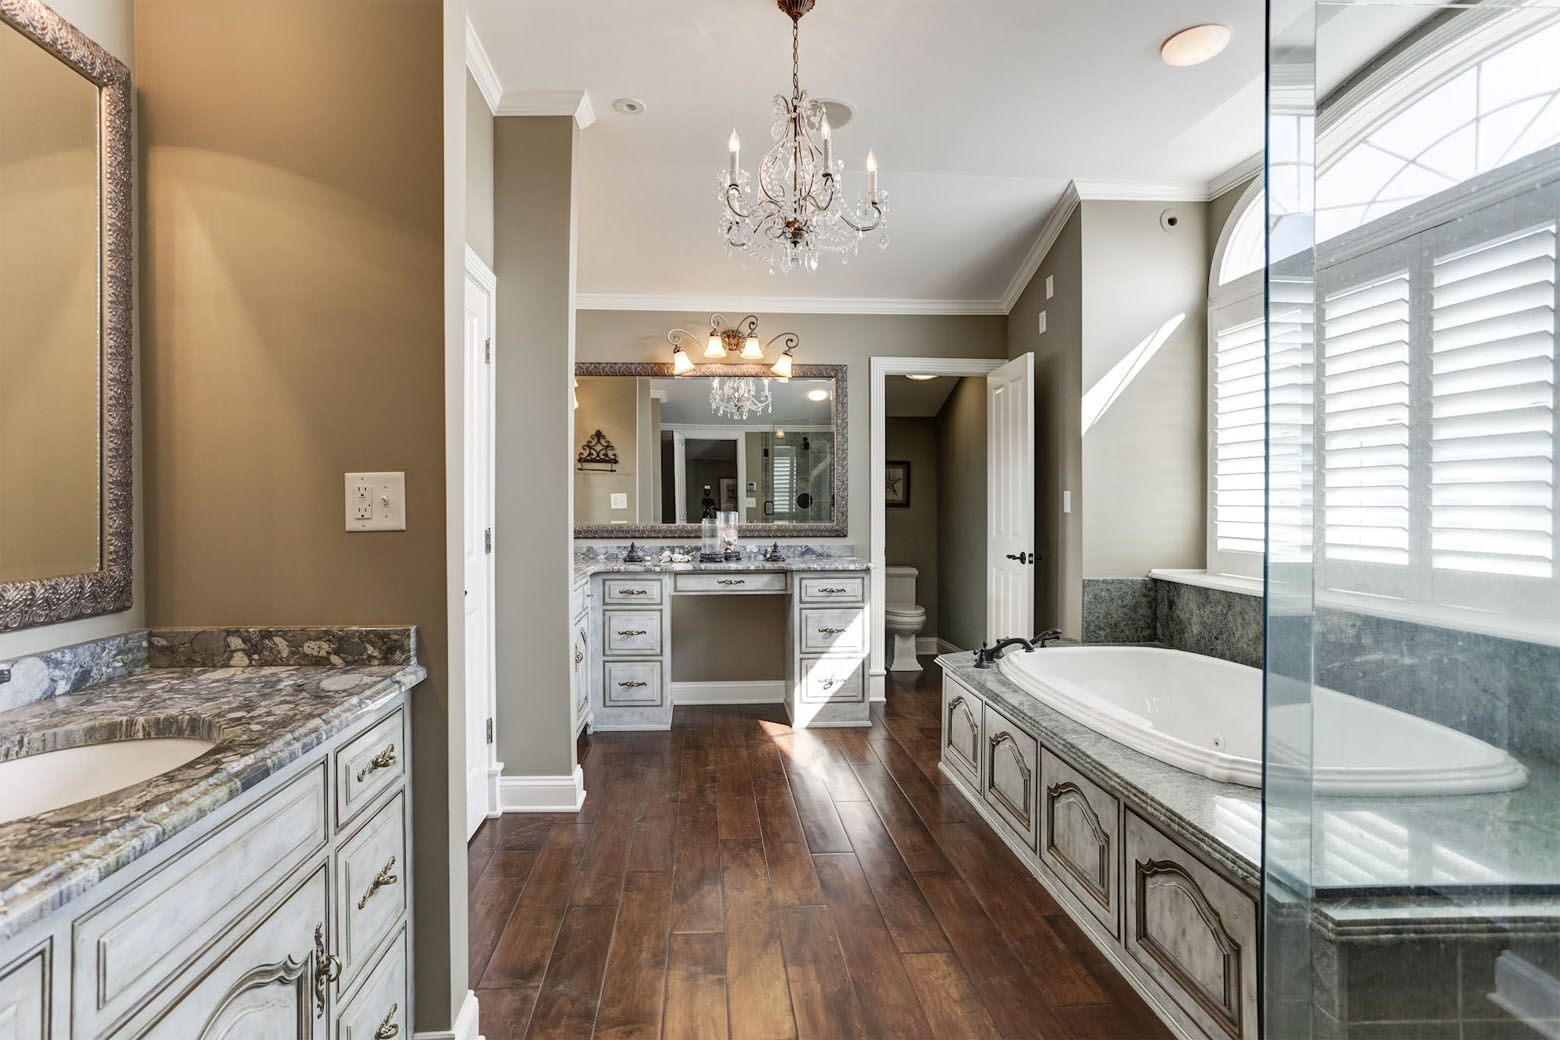 A look at the luxurious master bathroom. (Courtesy HomeVisit)